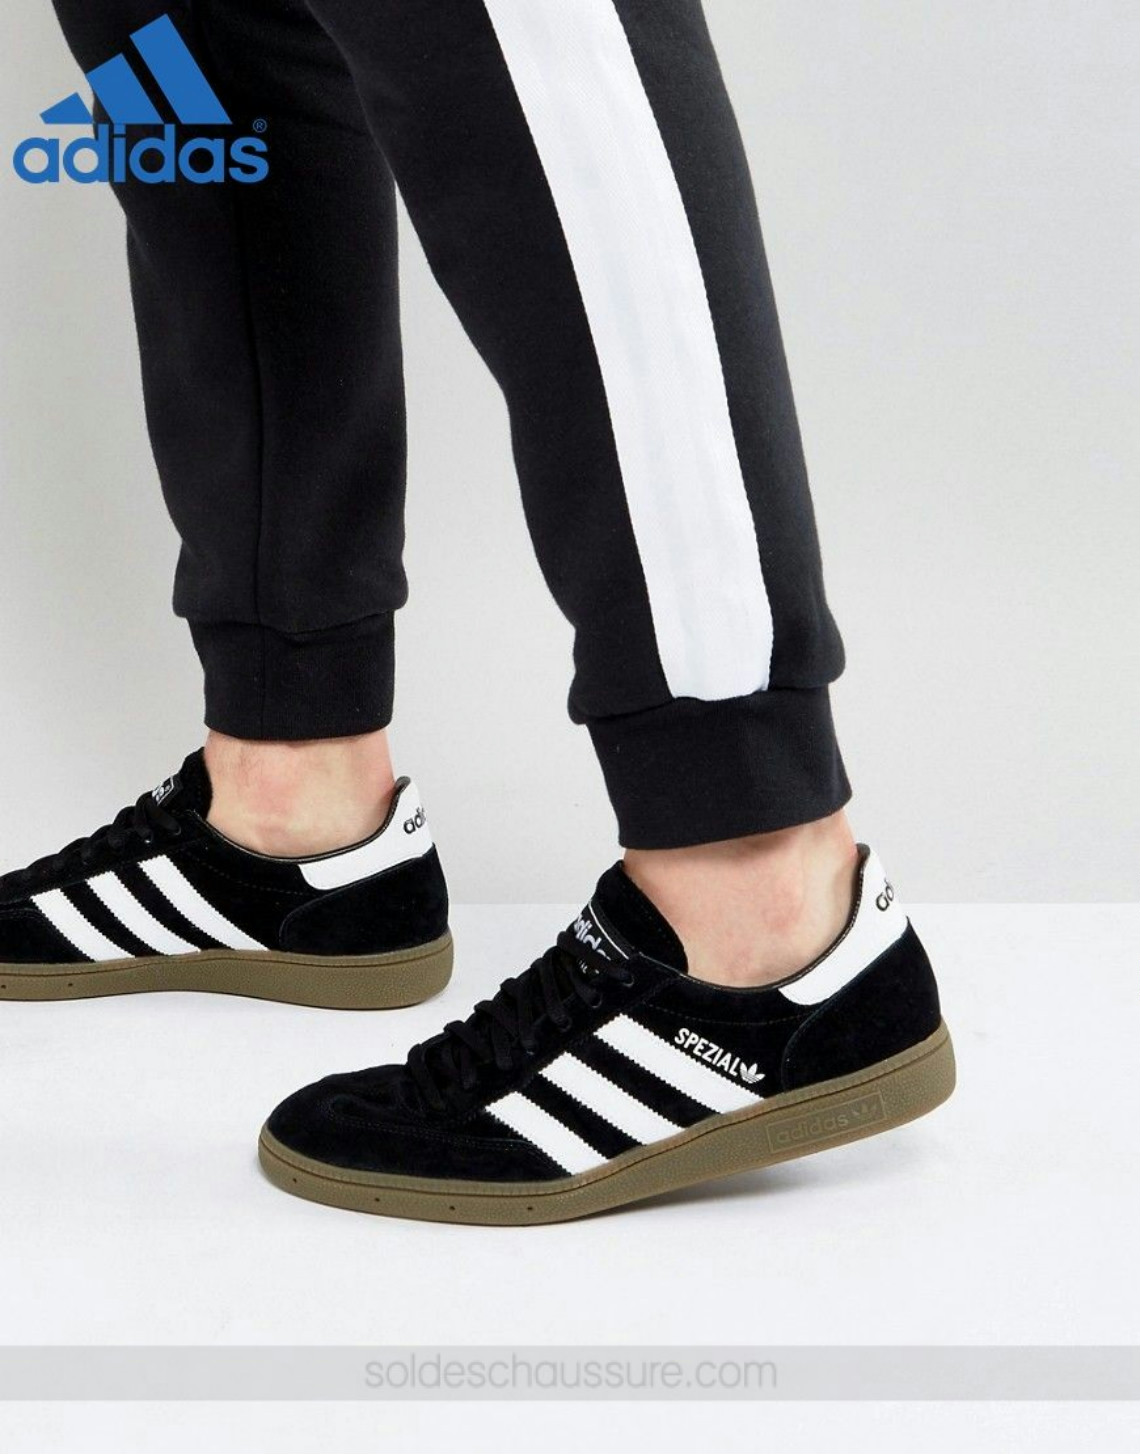 Adidas Moins Cher 7